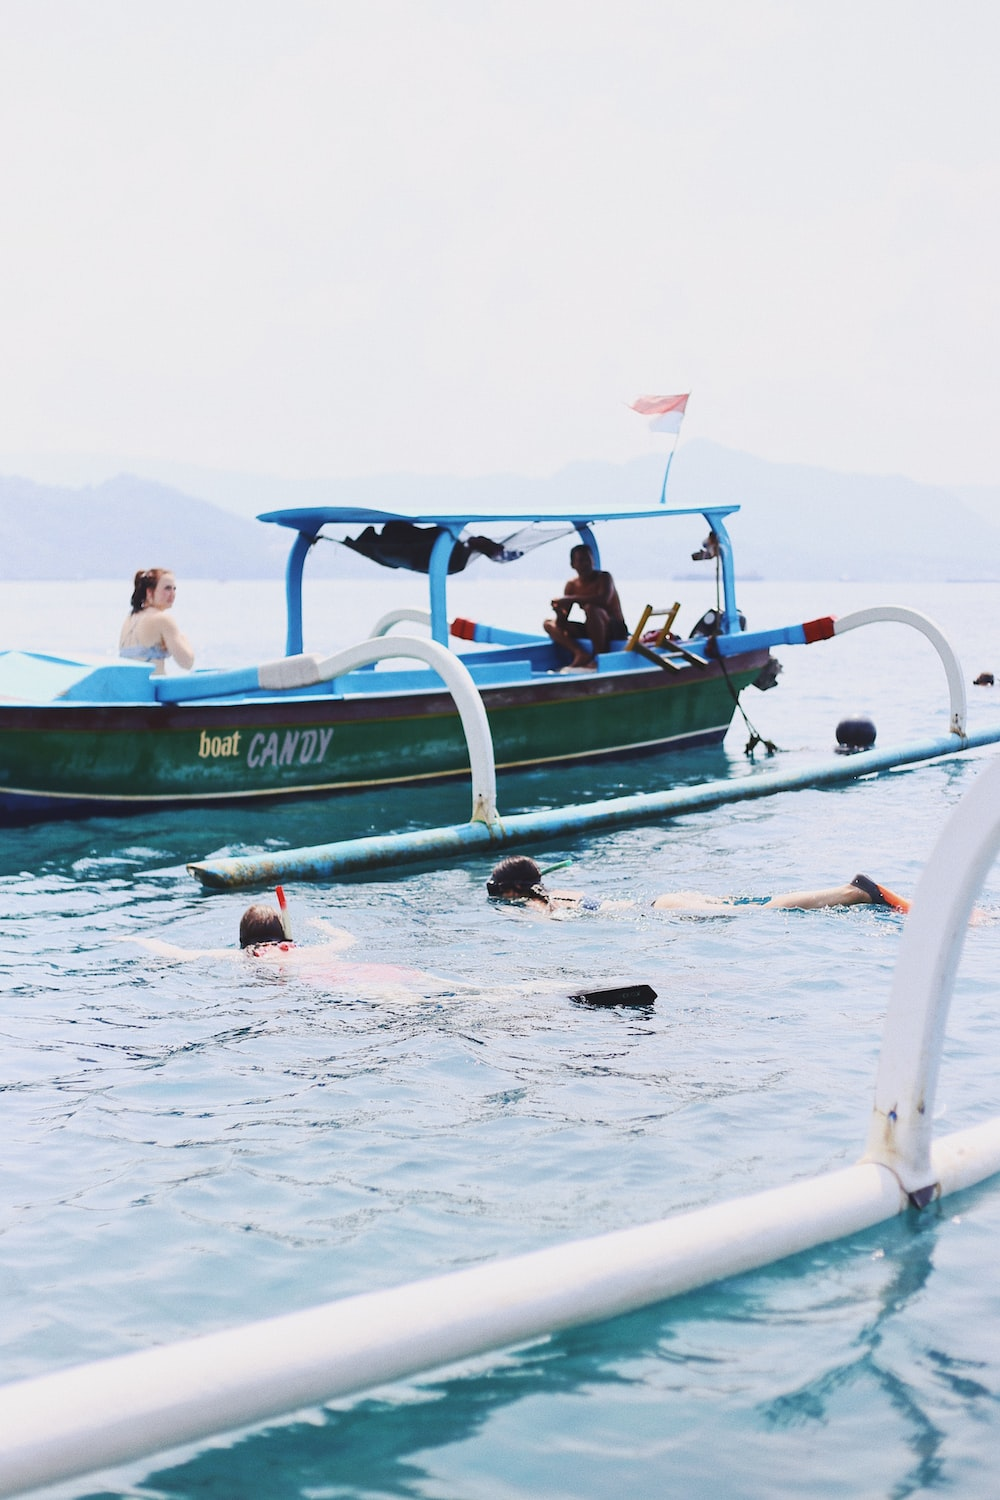 man and woman sitting in motorboat near two person swimming during daytime